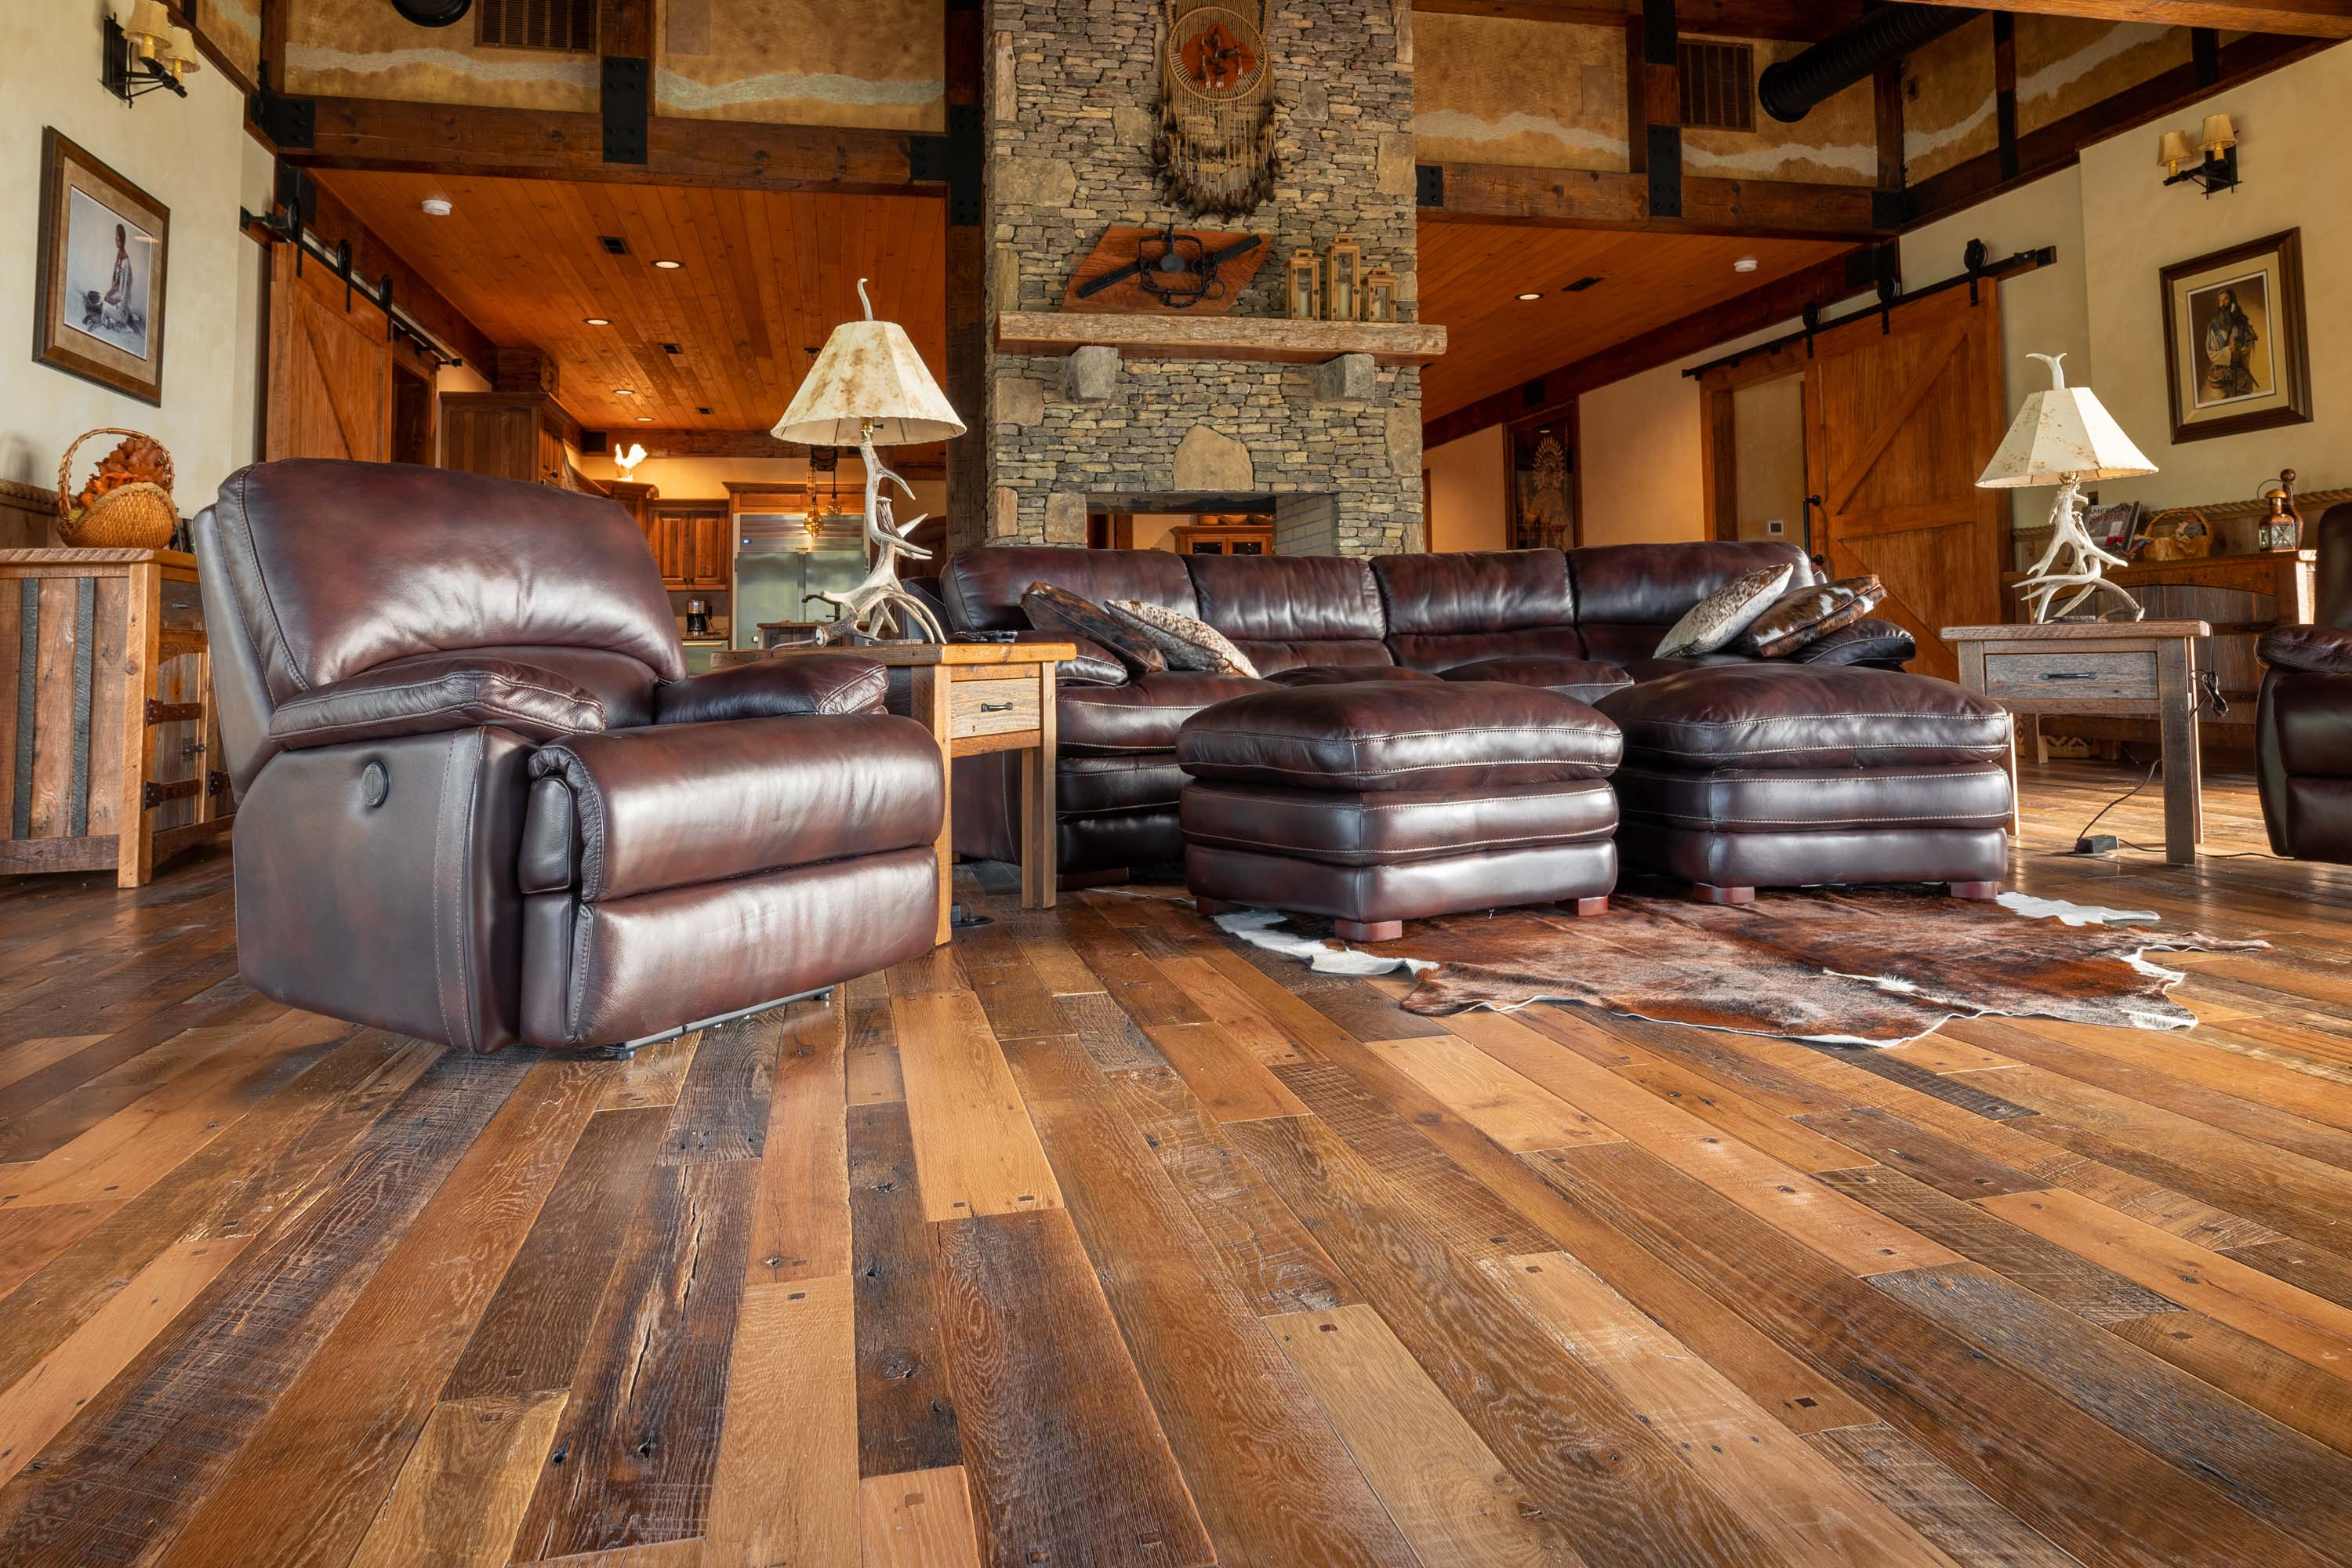 A living room in a cabin style house with reclaimed americana reclaimed wood flooring by Tennessee Wood Flooring. This hardwood floor is authentically made in the east tennessee area.